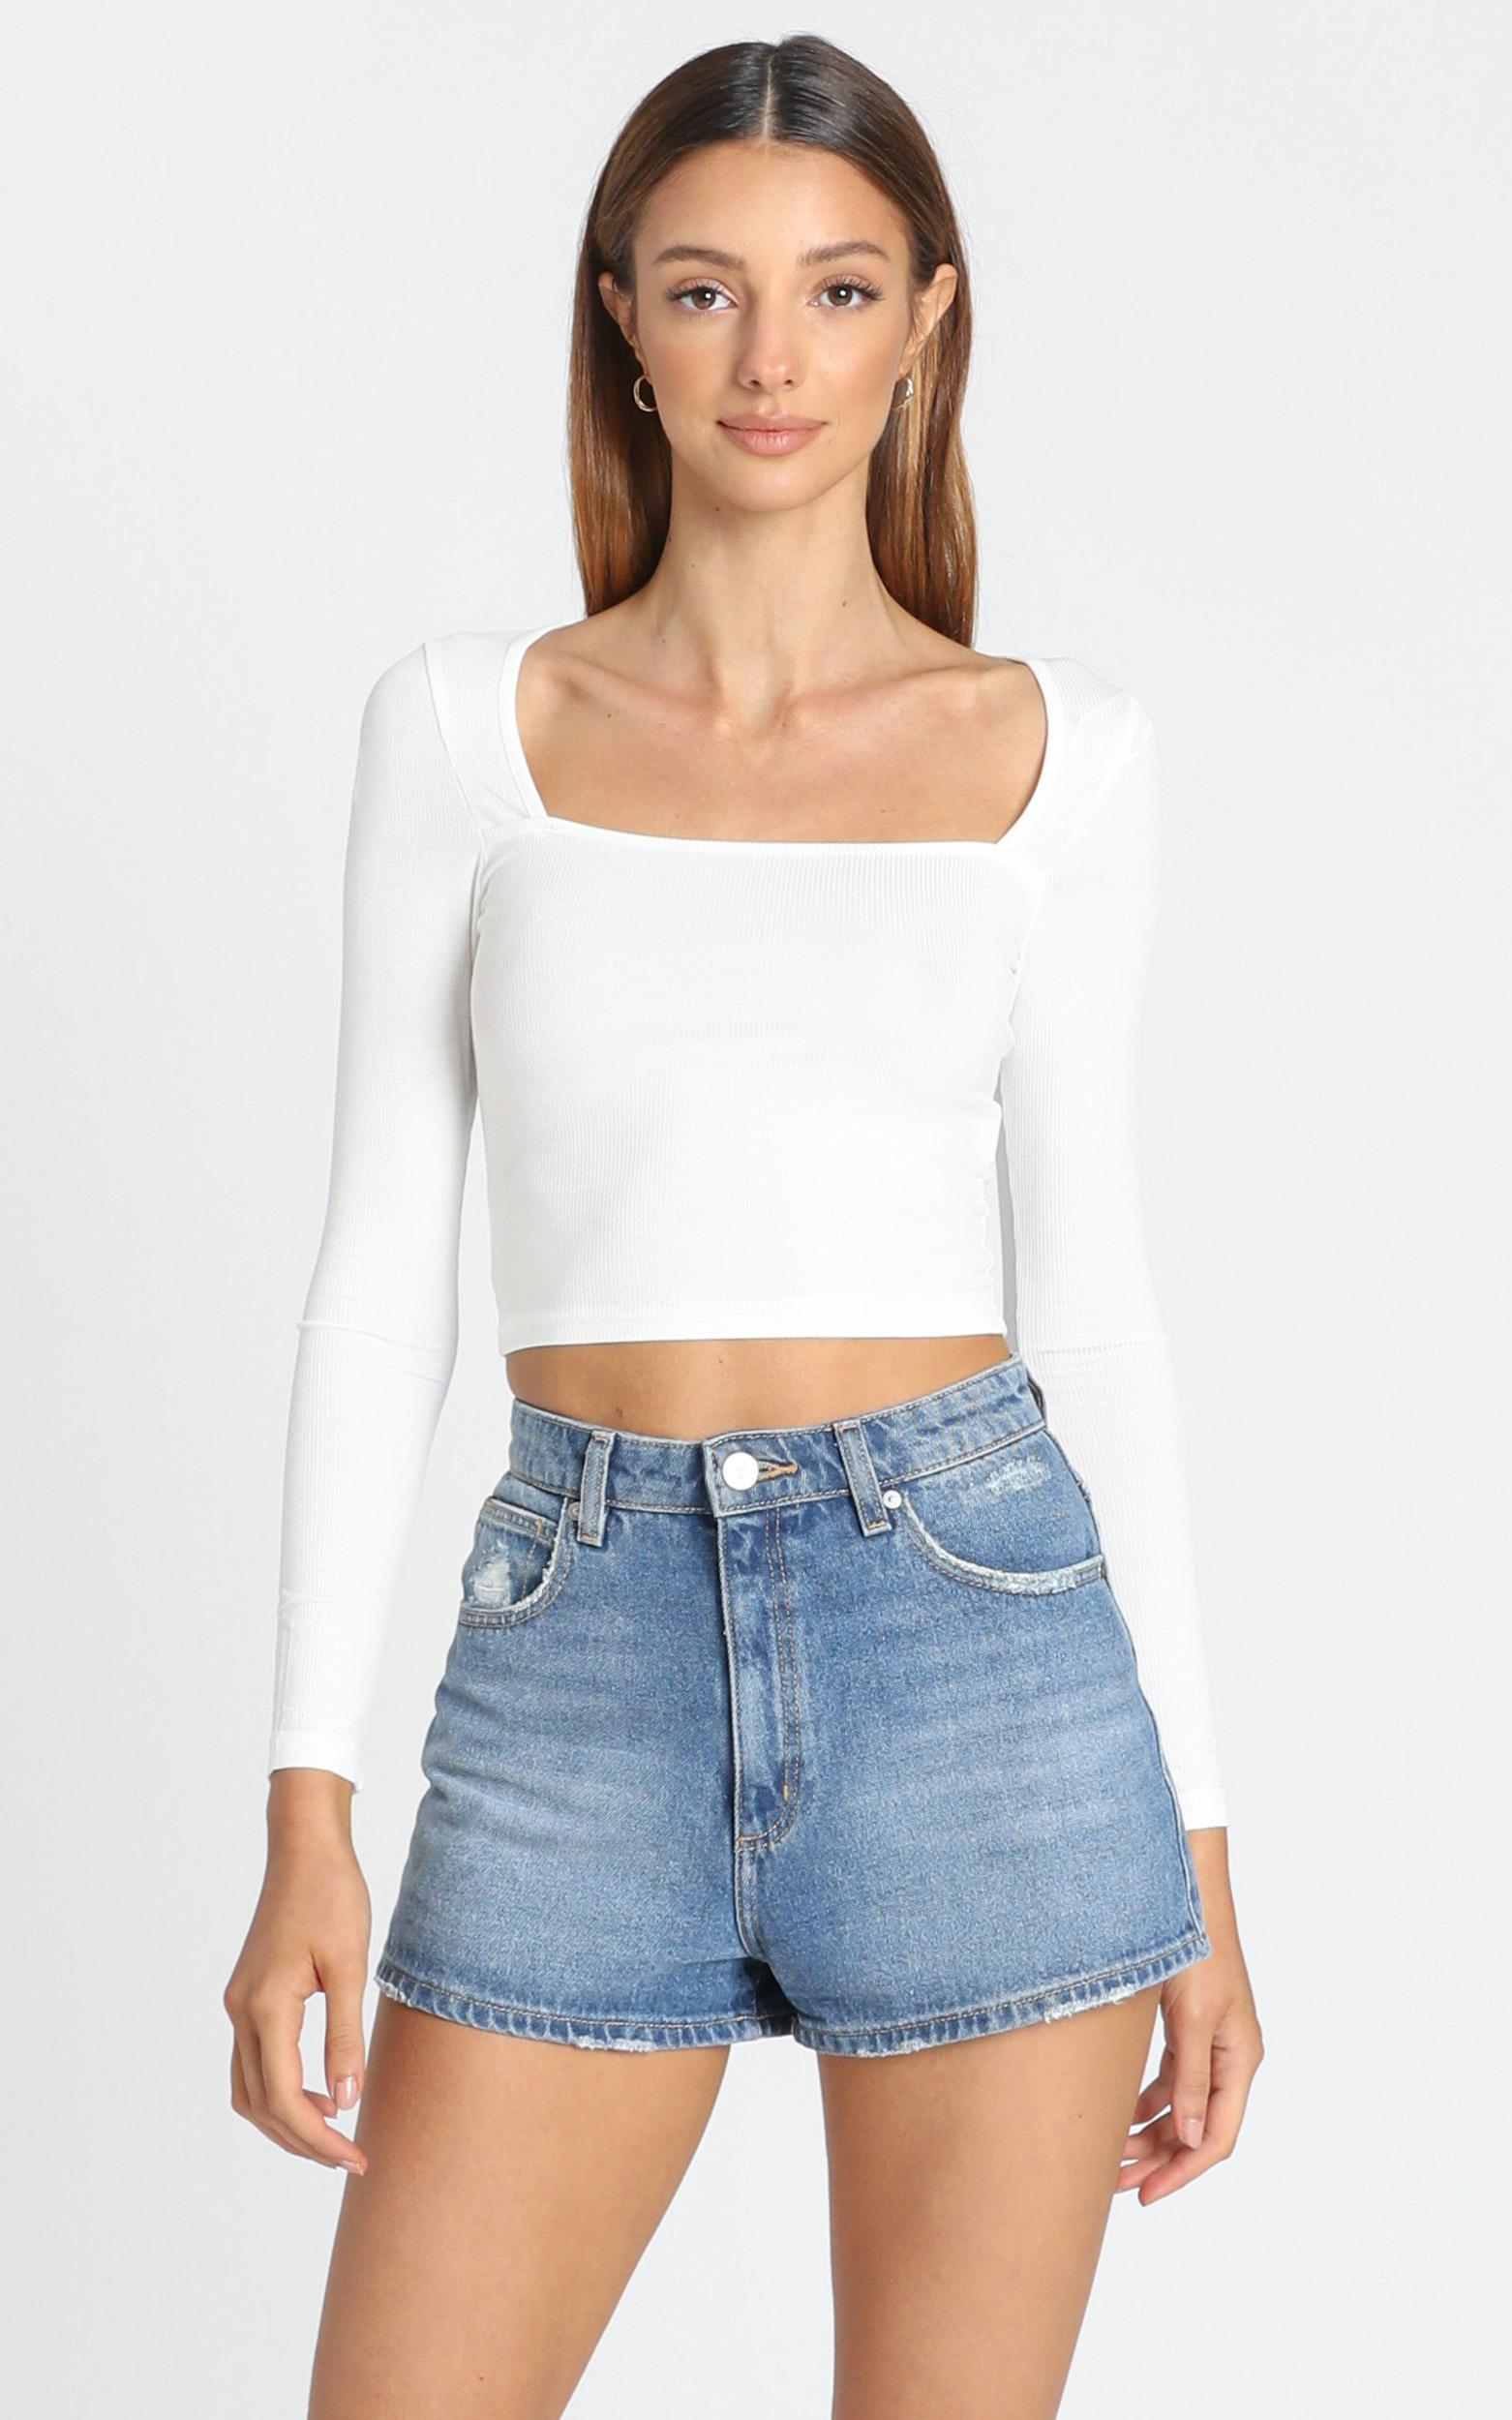 Daisie Square Neck Top in White - 6 (XS), White, hi-res image number null